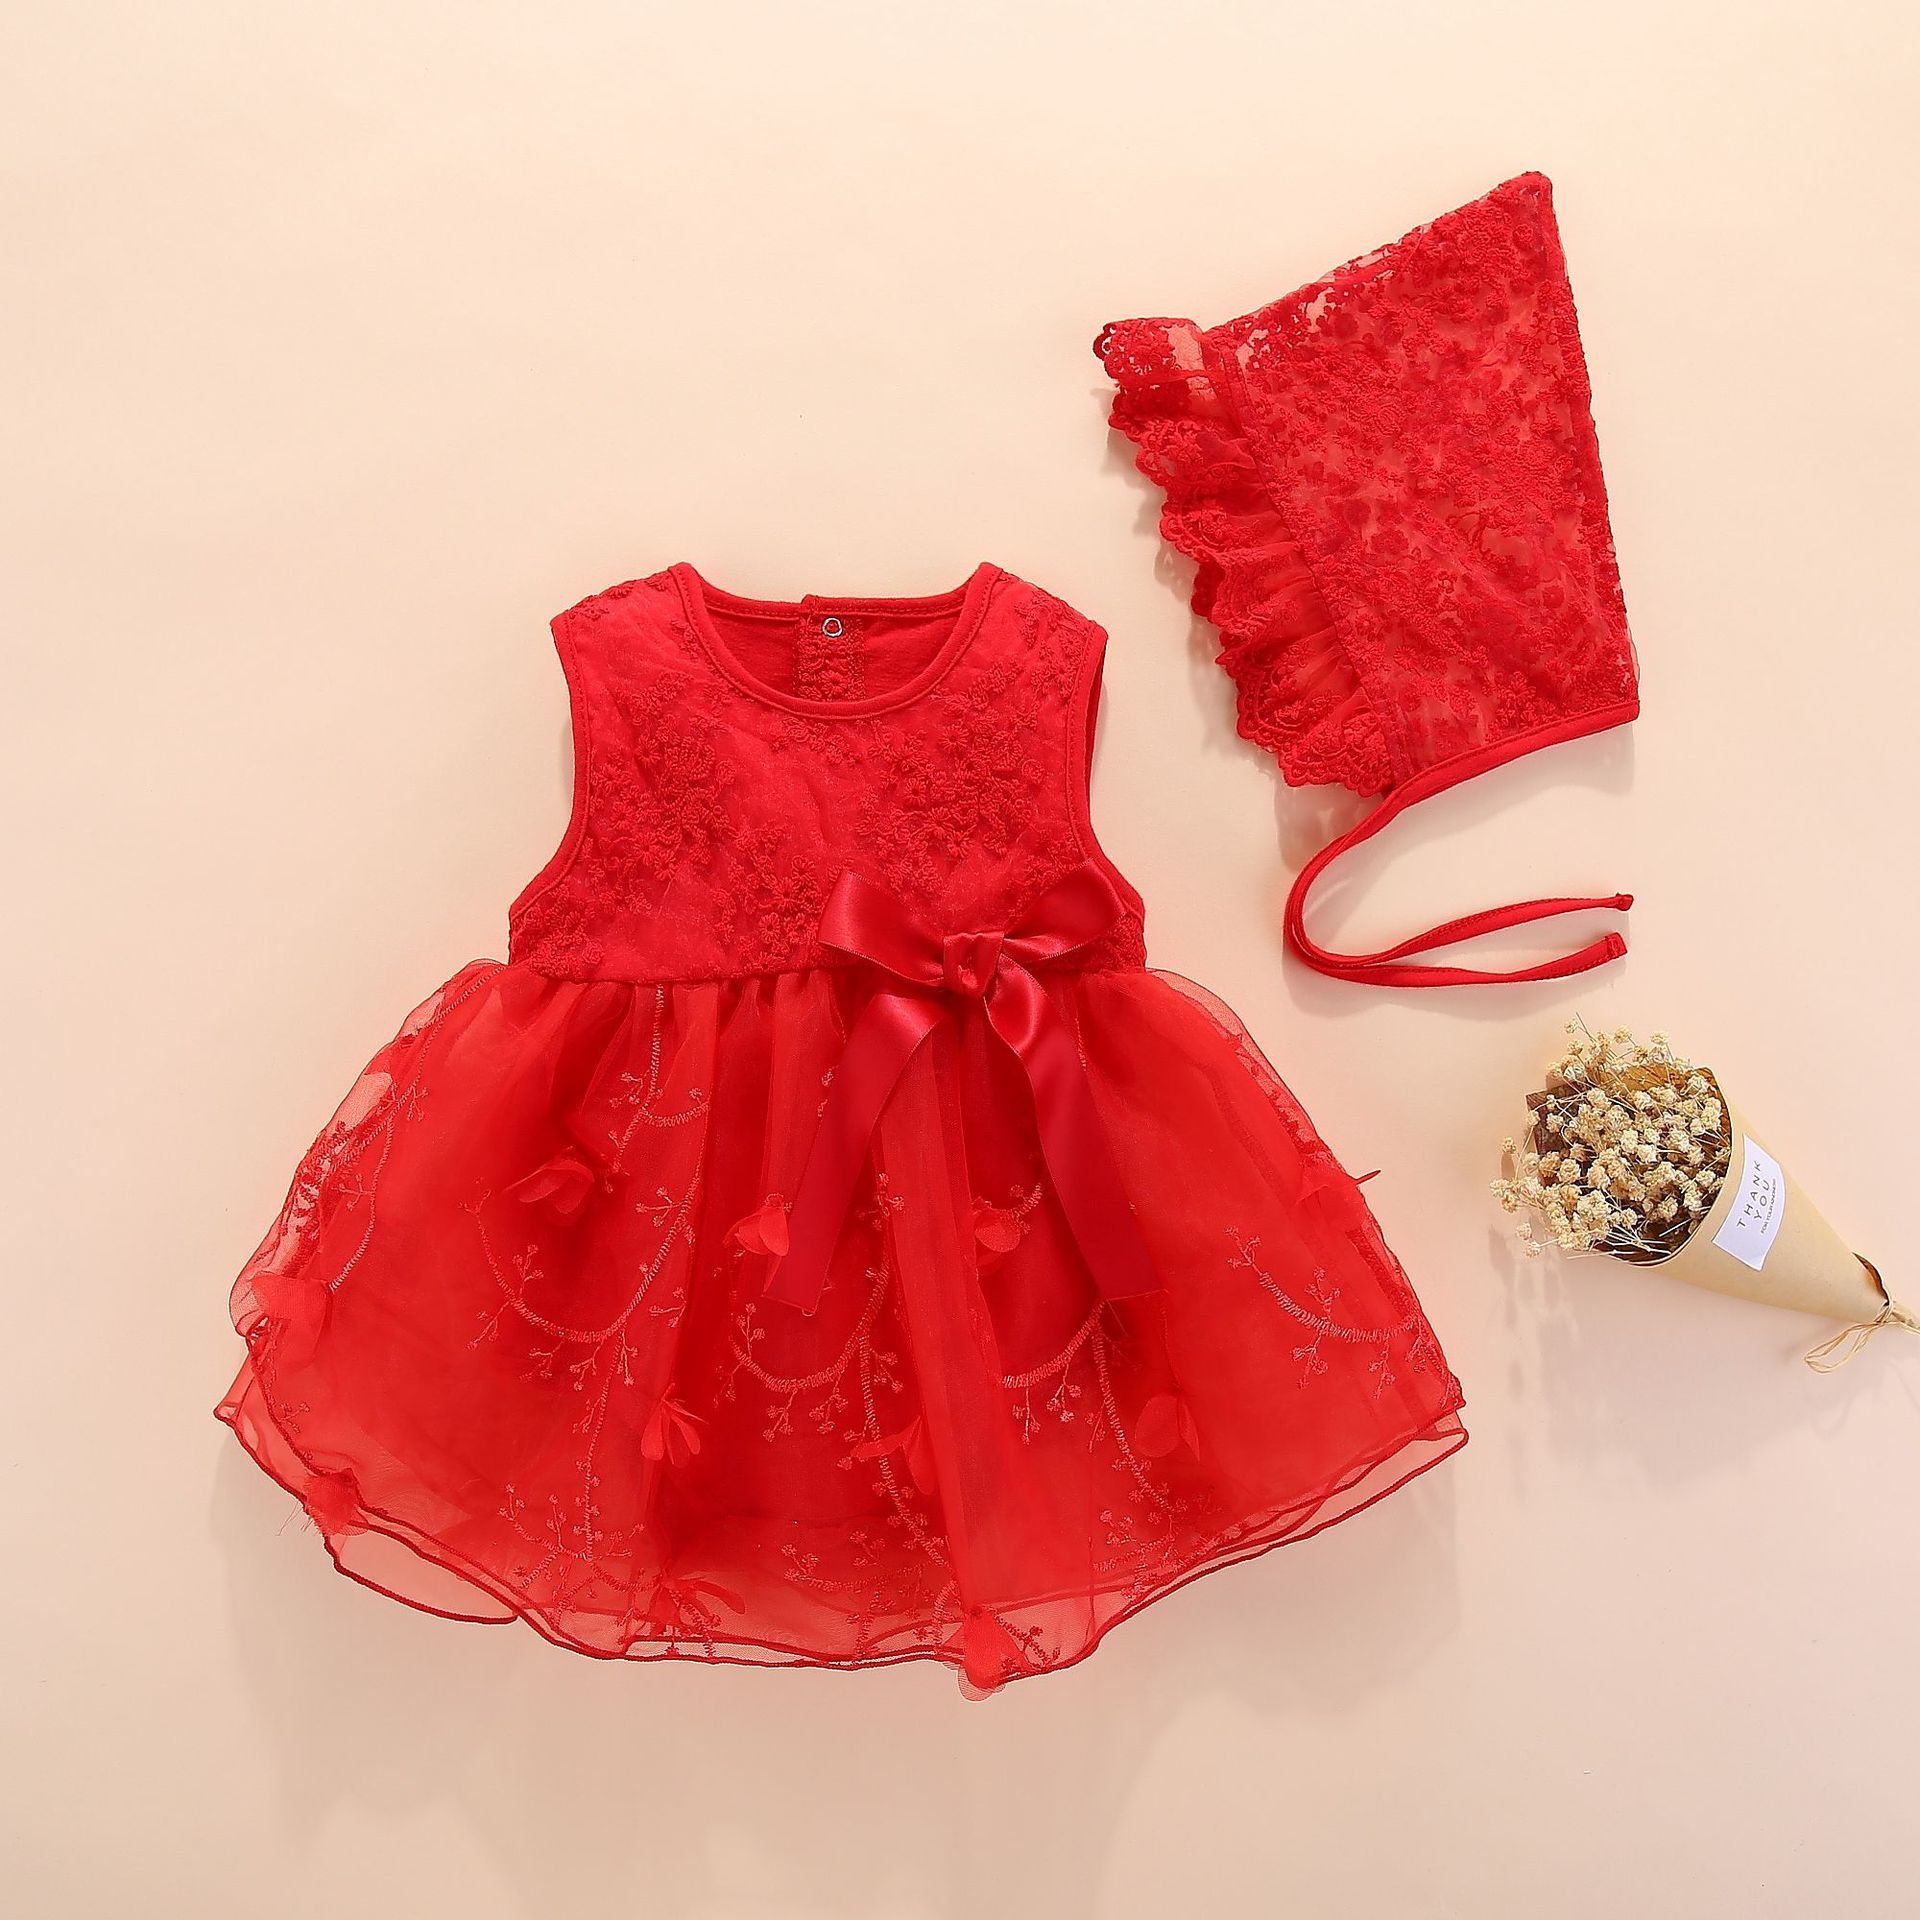 Newborn Dresses Summer With Flower 0 3 6 Month Baby Girl Dress For Party And Wedding Princess Style Clothes Q190518